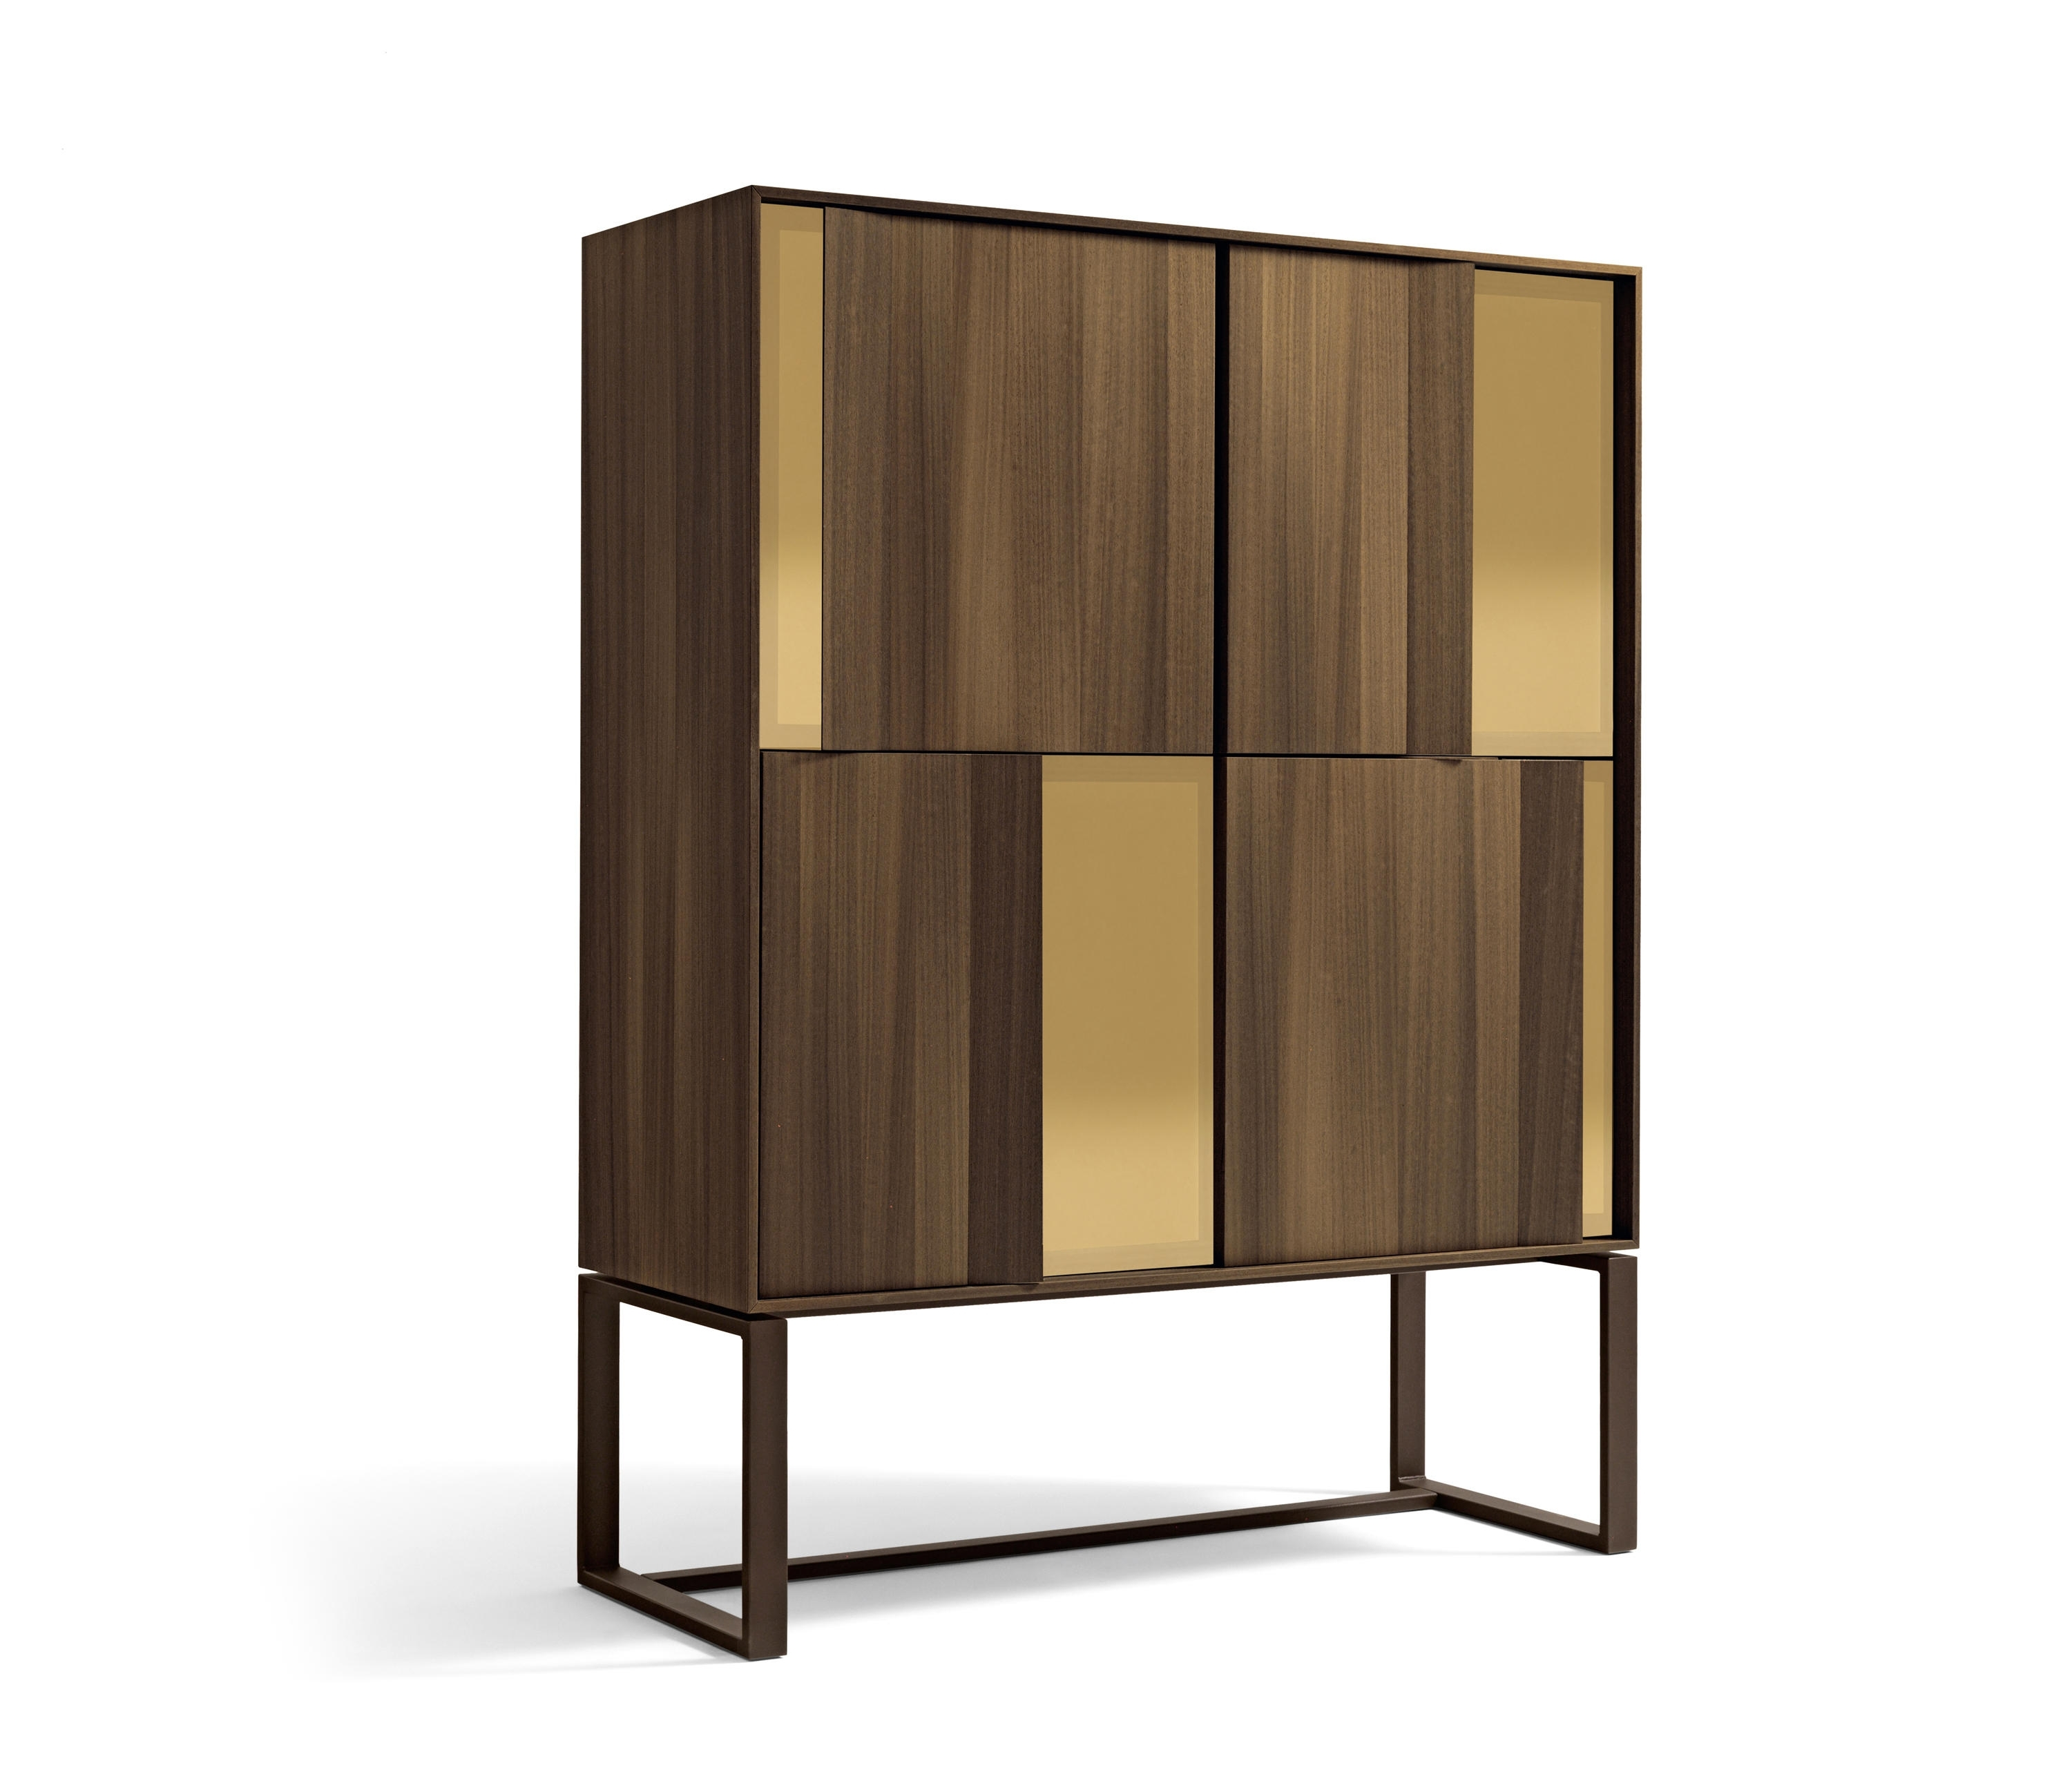 Origami Cabinet - Sideboards From Giorgetti | Architonic within 4 Door Wood Squares Sideboards (Image 23 of 30)